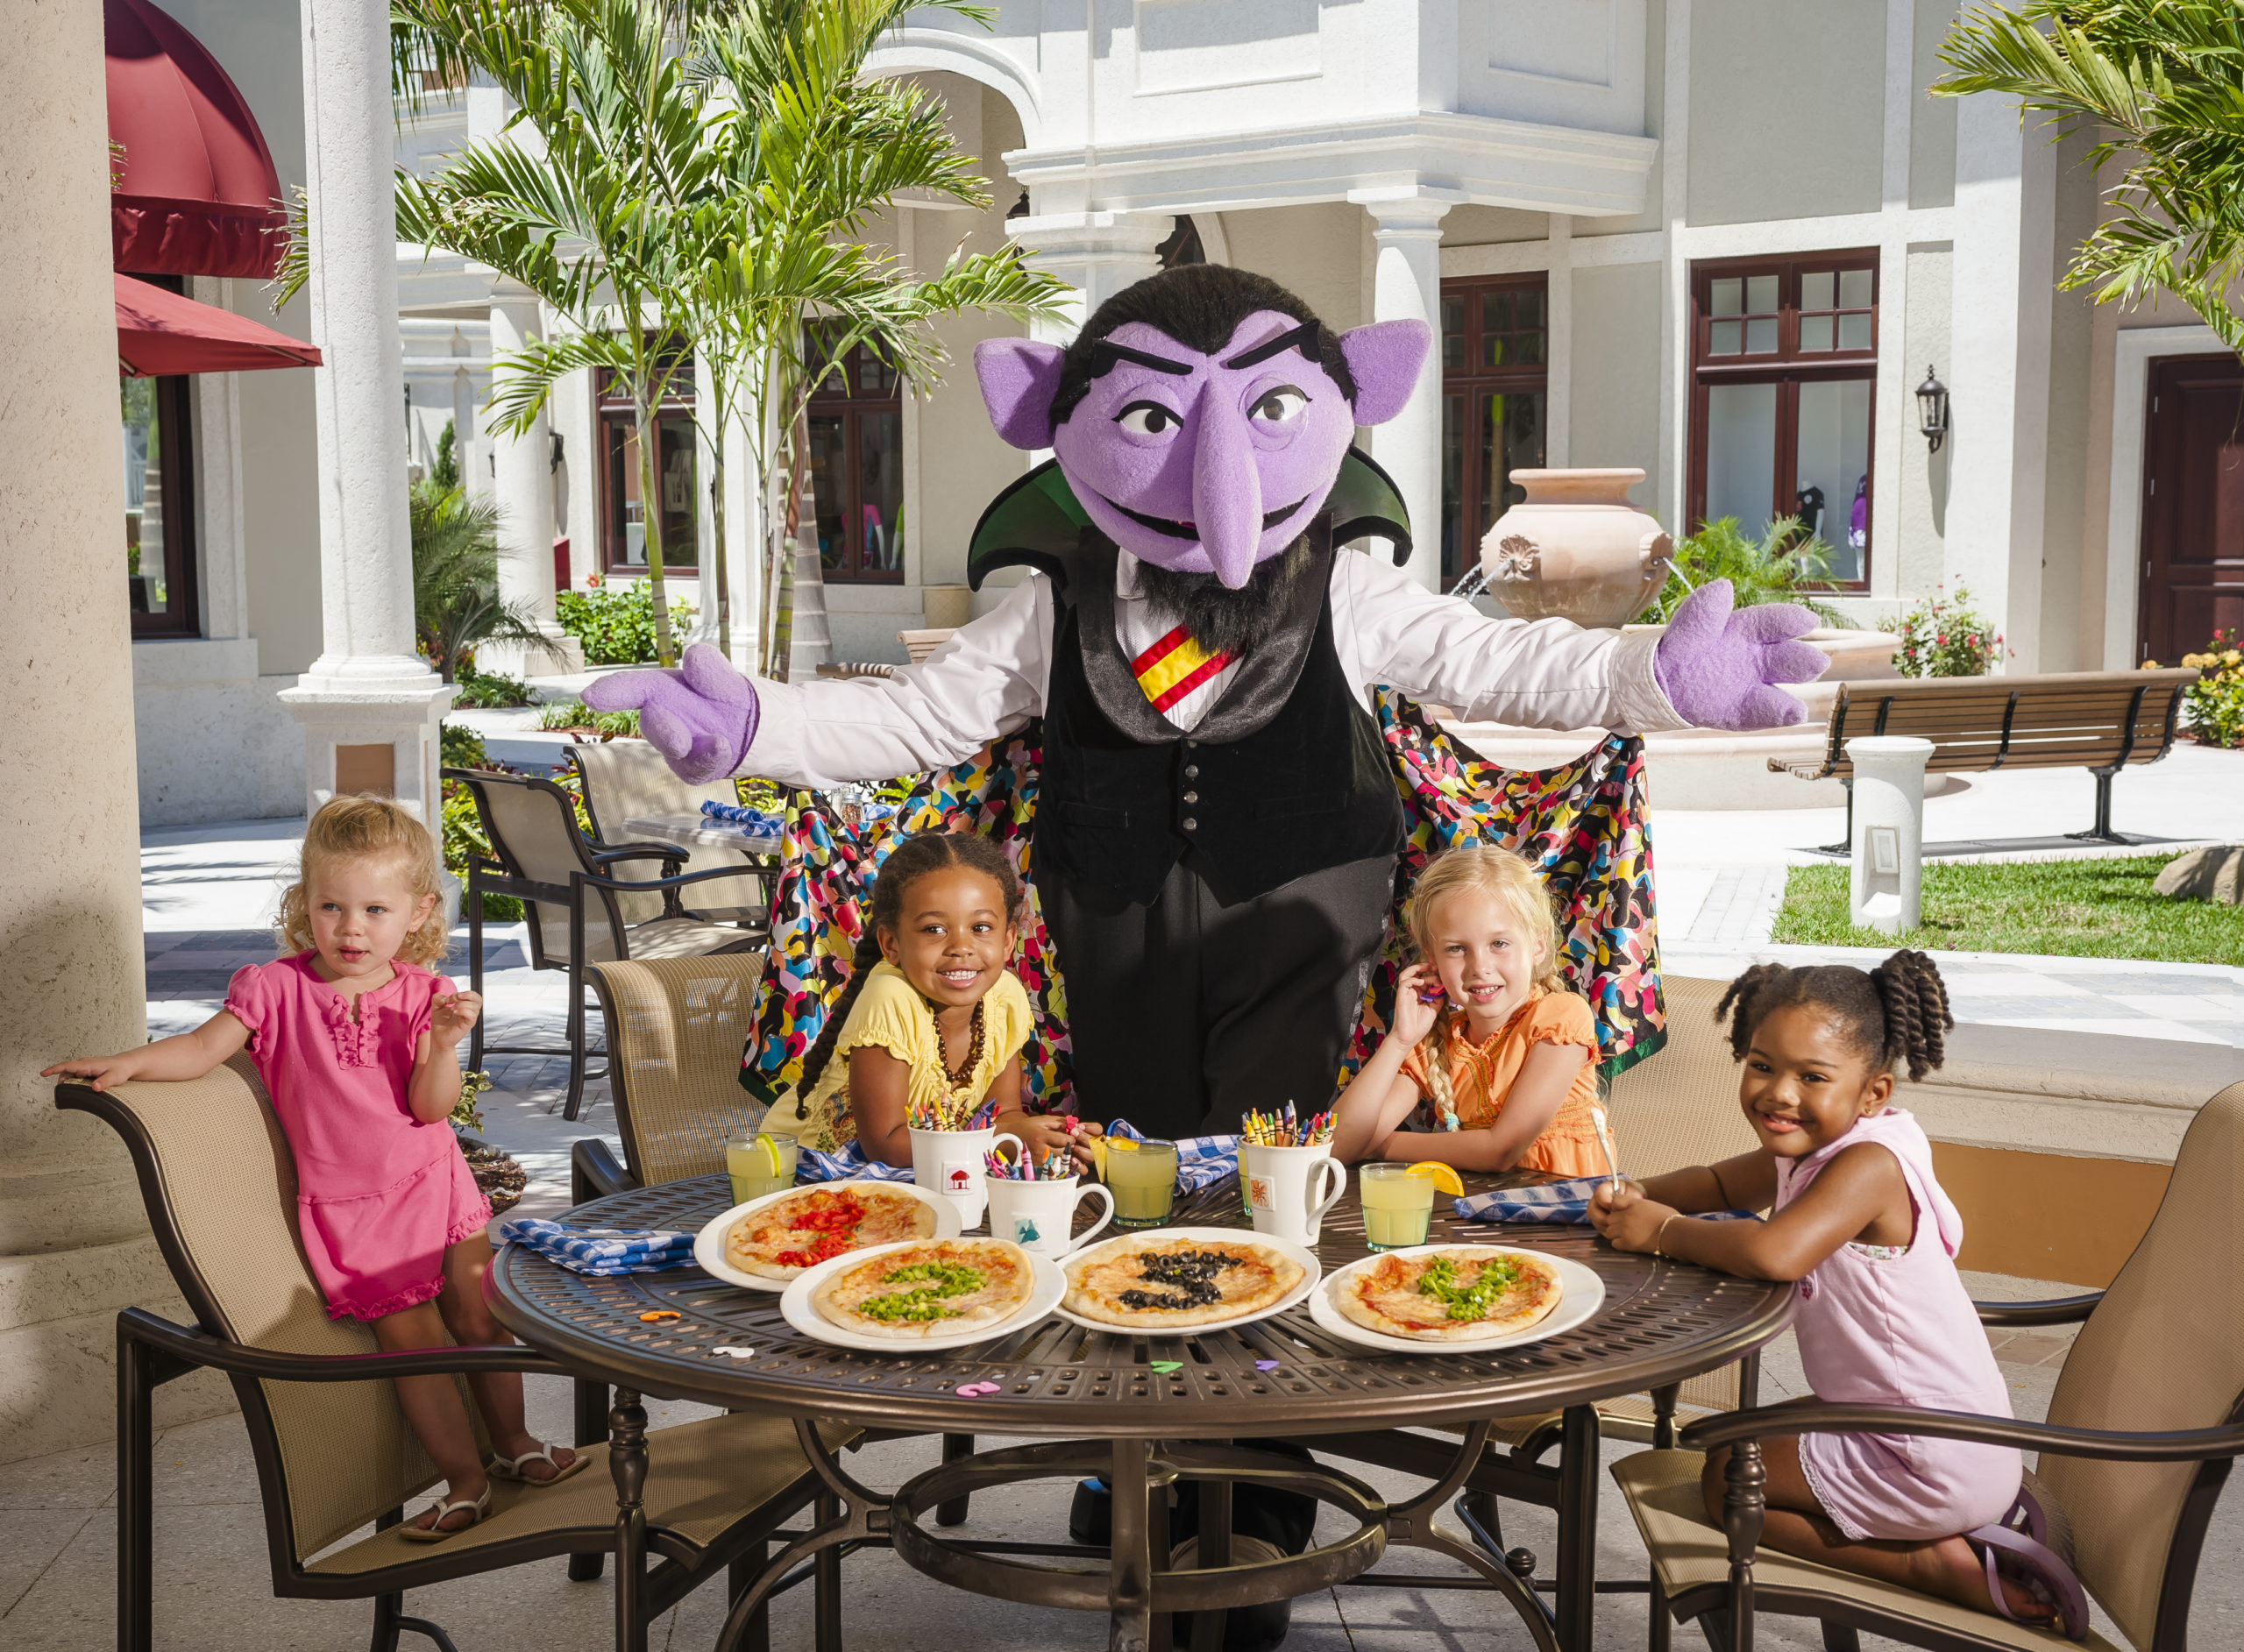 Kids enjoying a pizza party at Beaches Resort